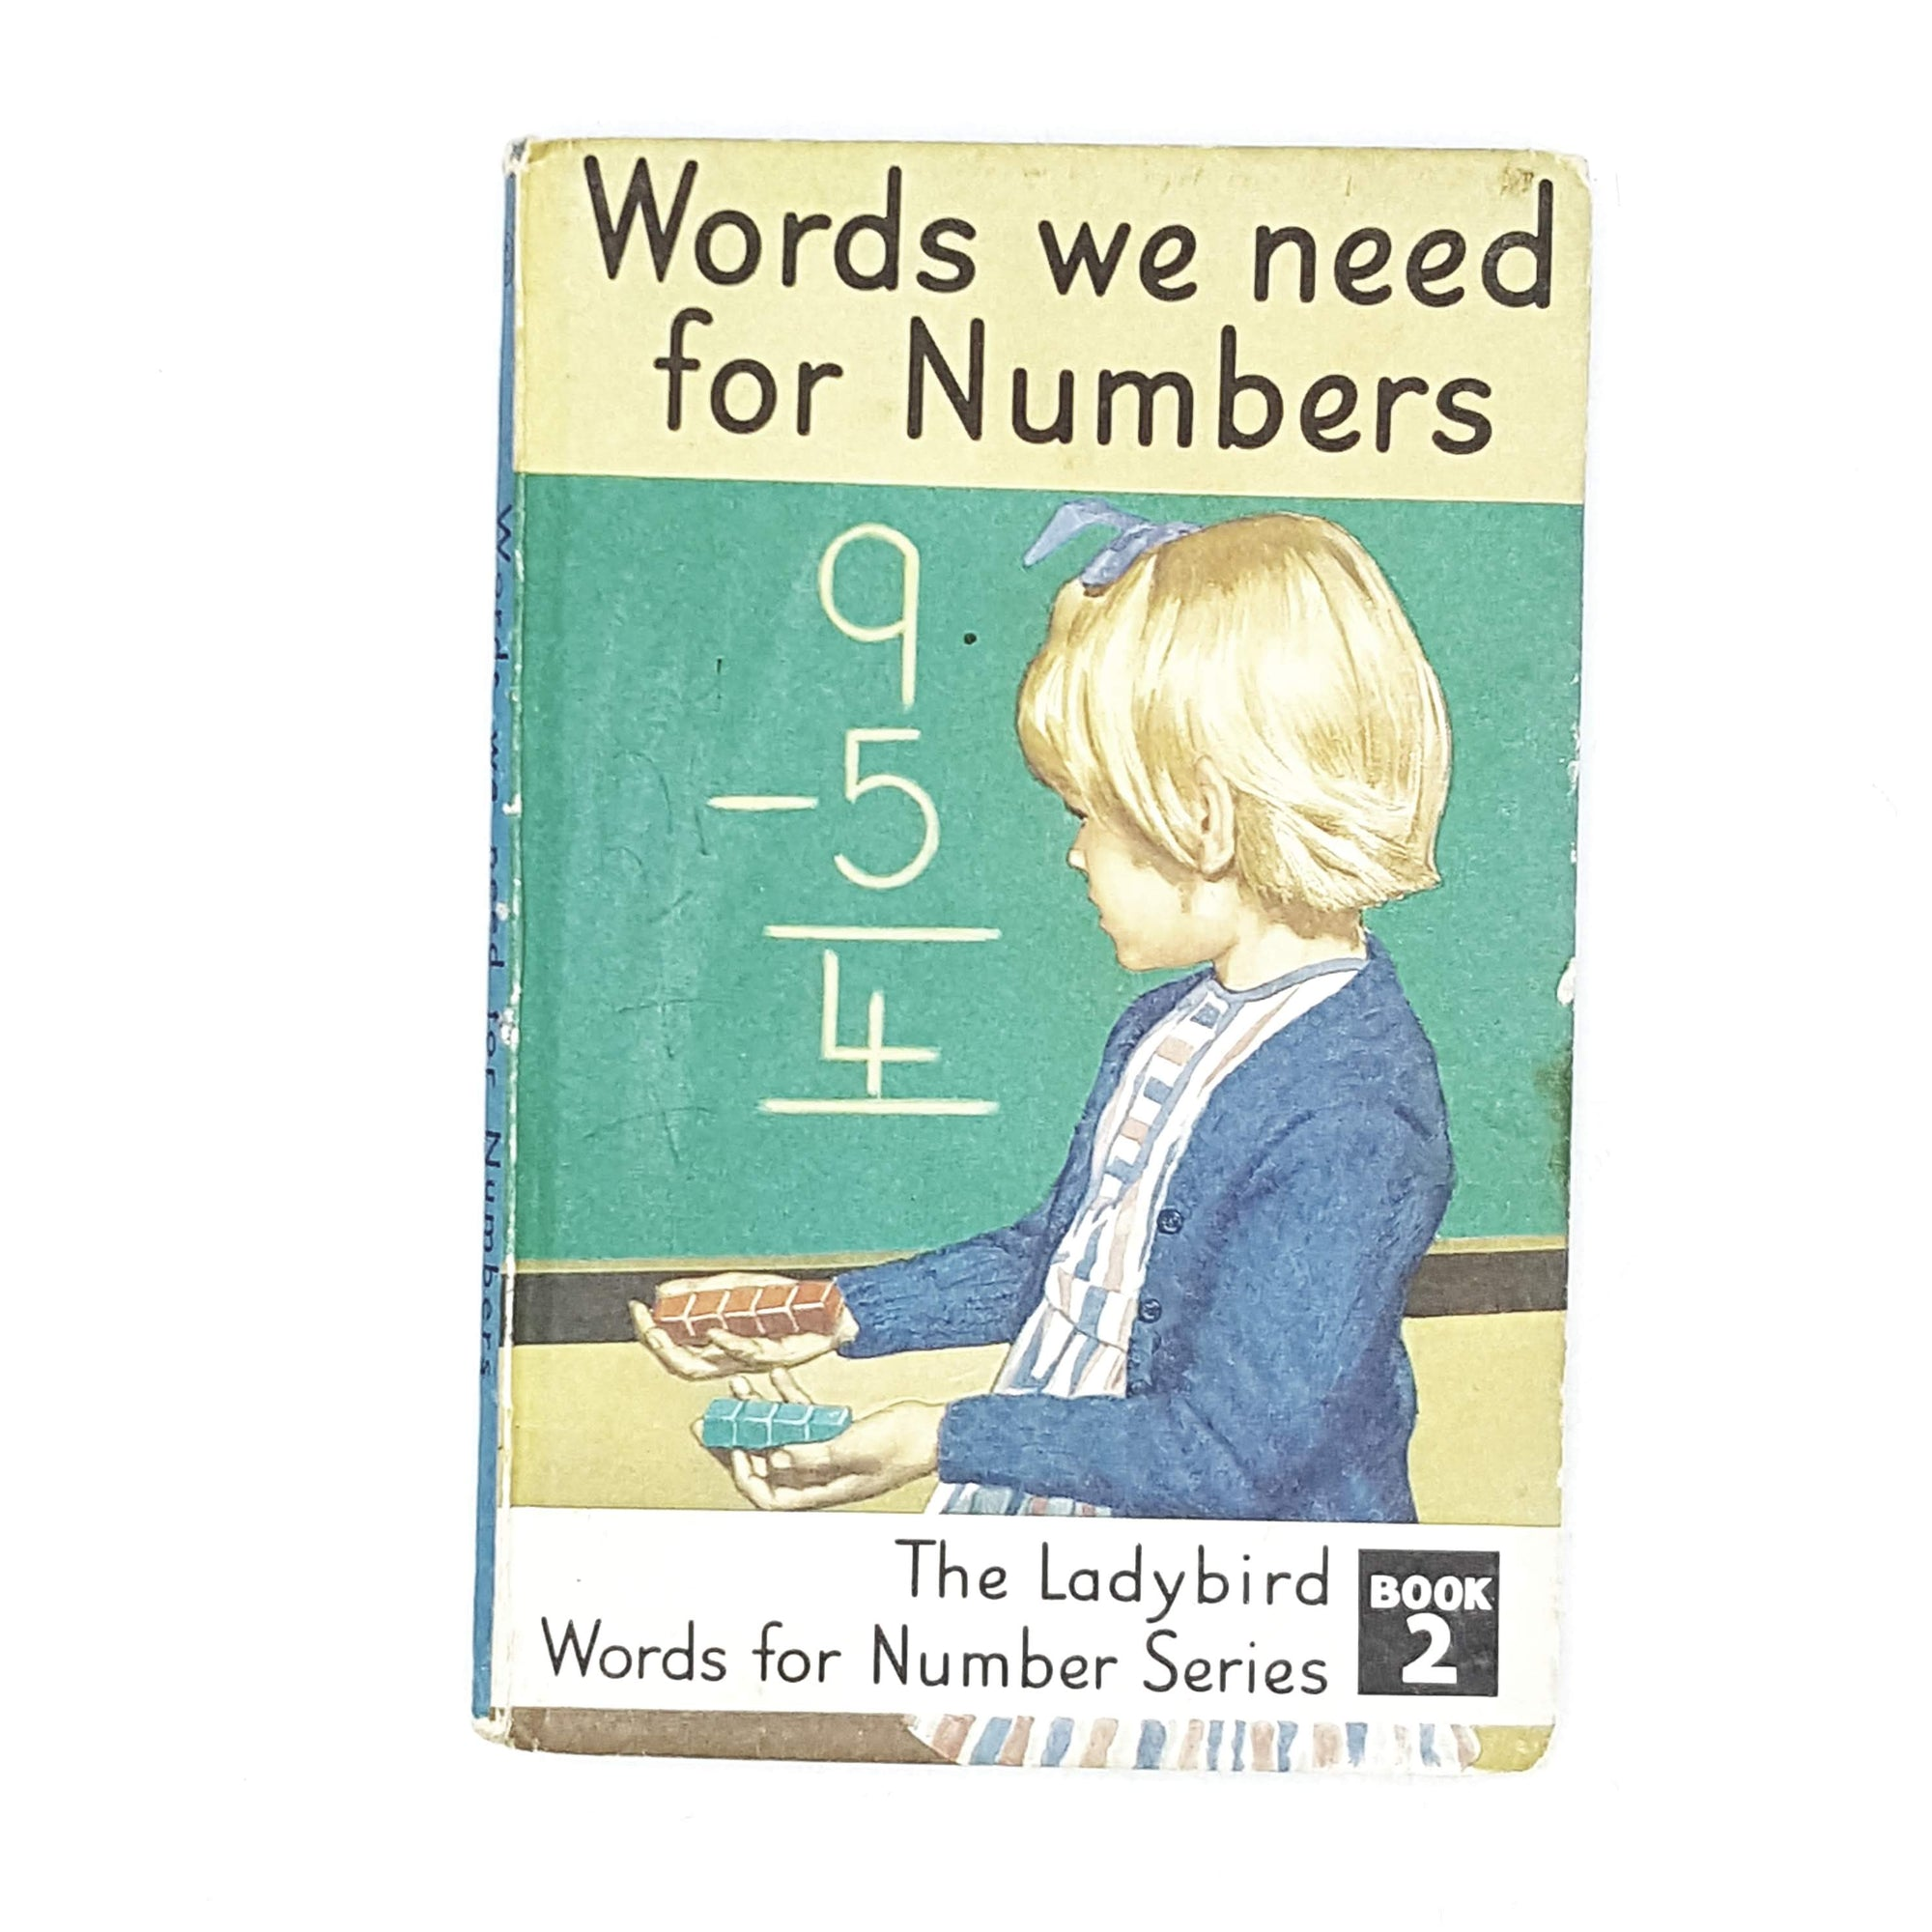 Words We Need for Numbers by W. Murray 1966